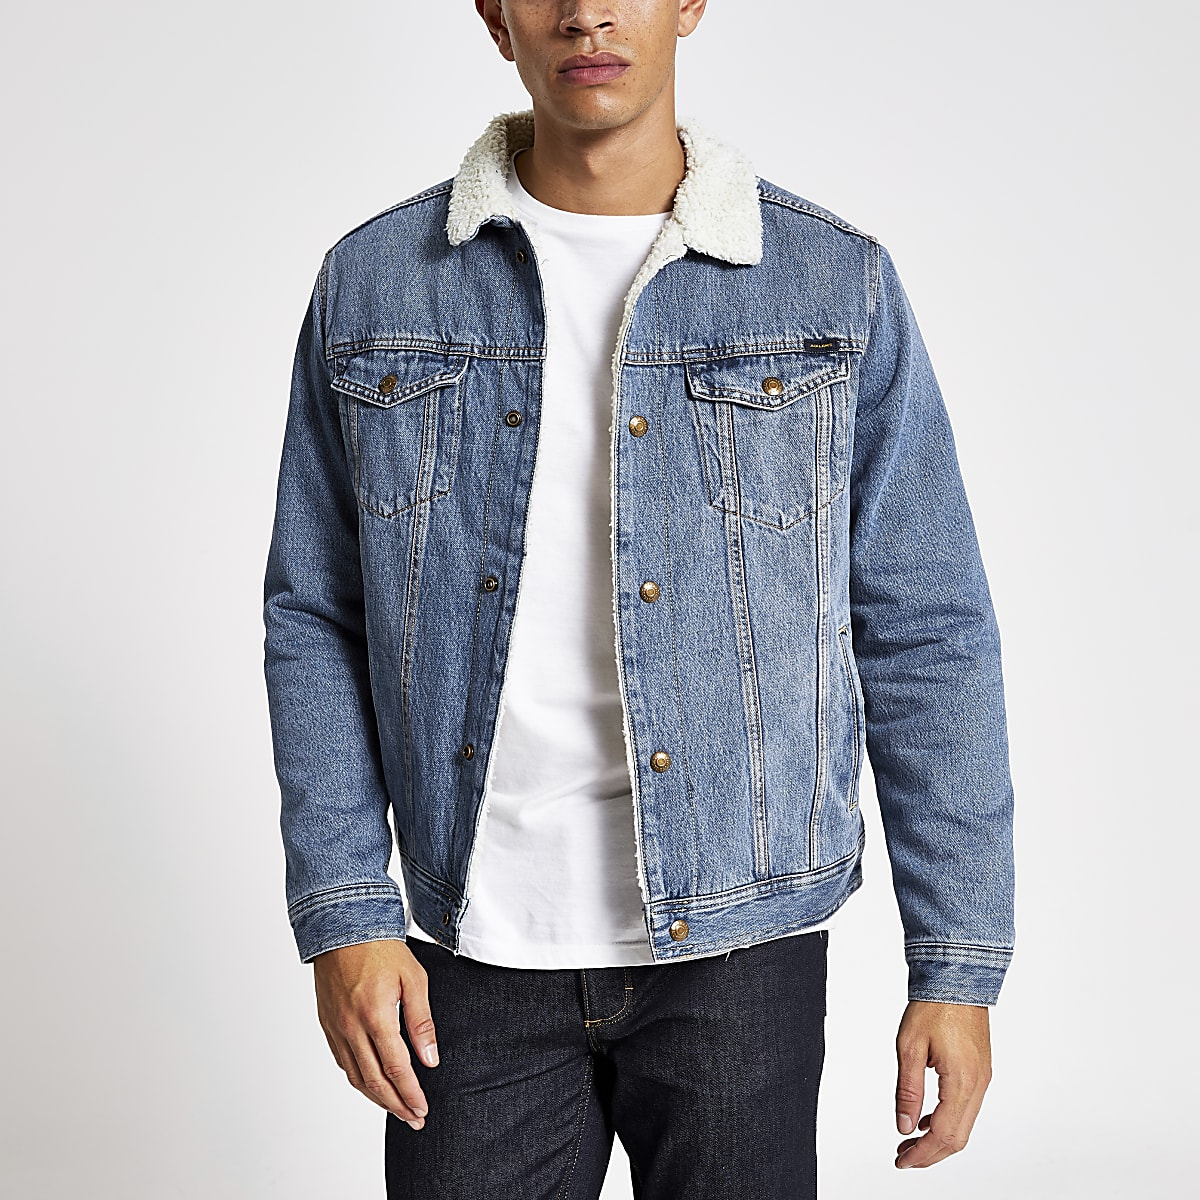 Jack and Jones - Veste en denim bleu avec col borg